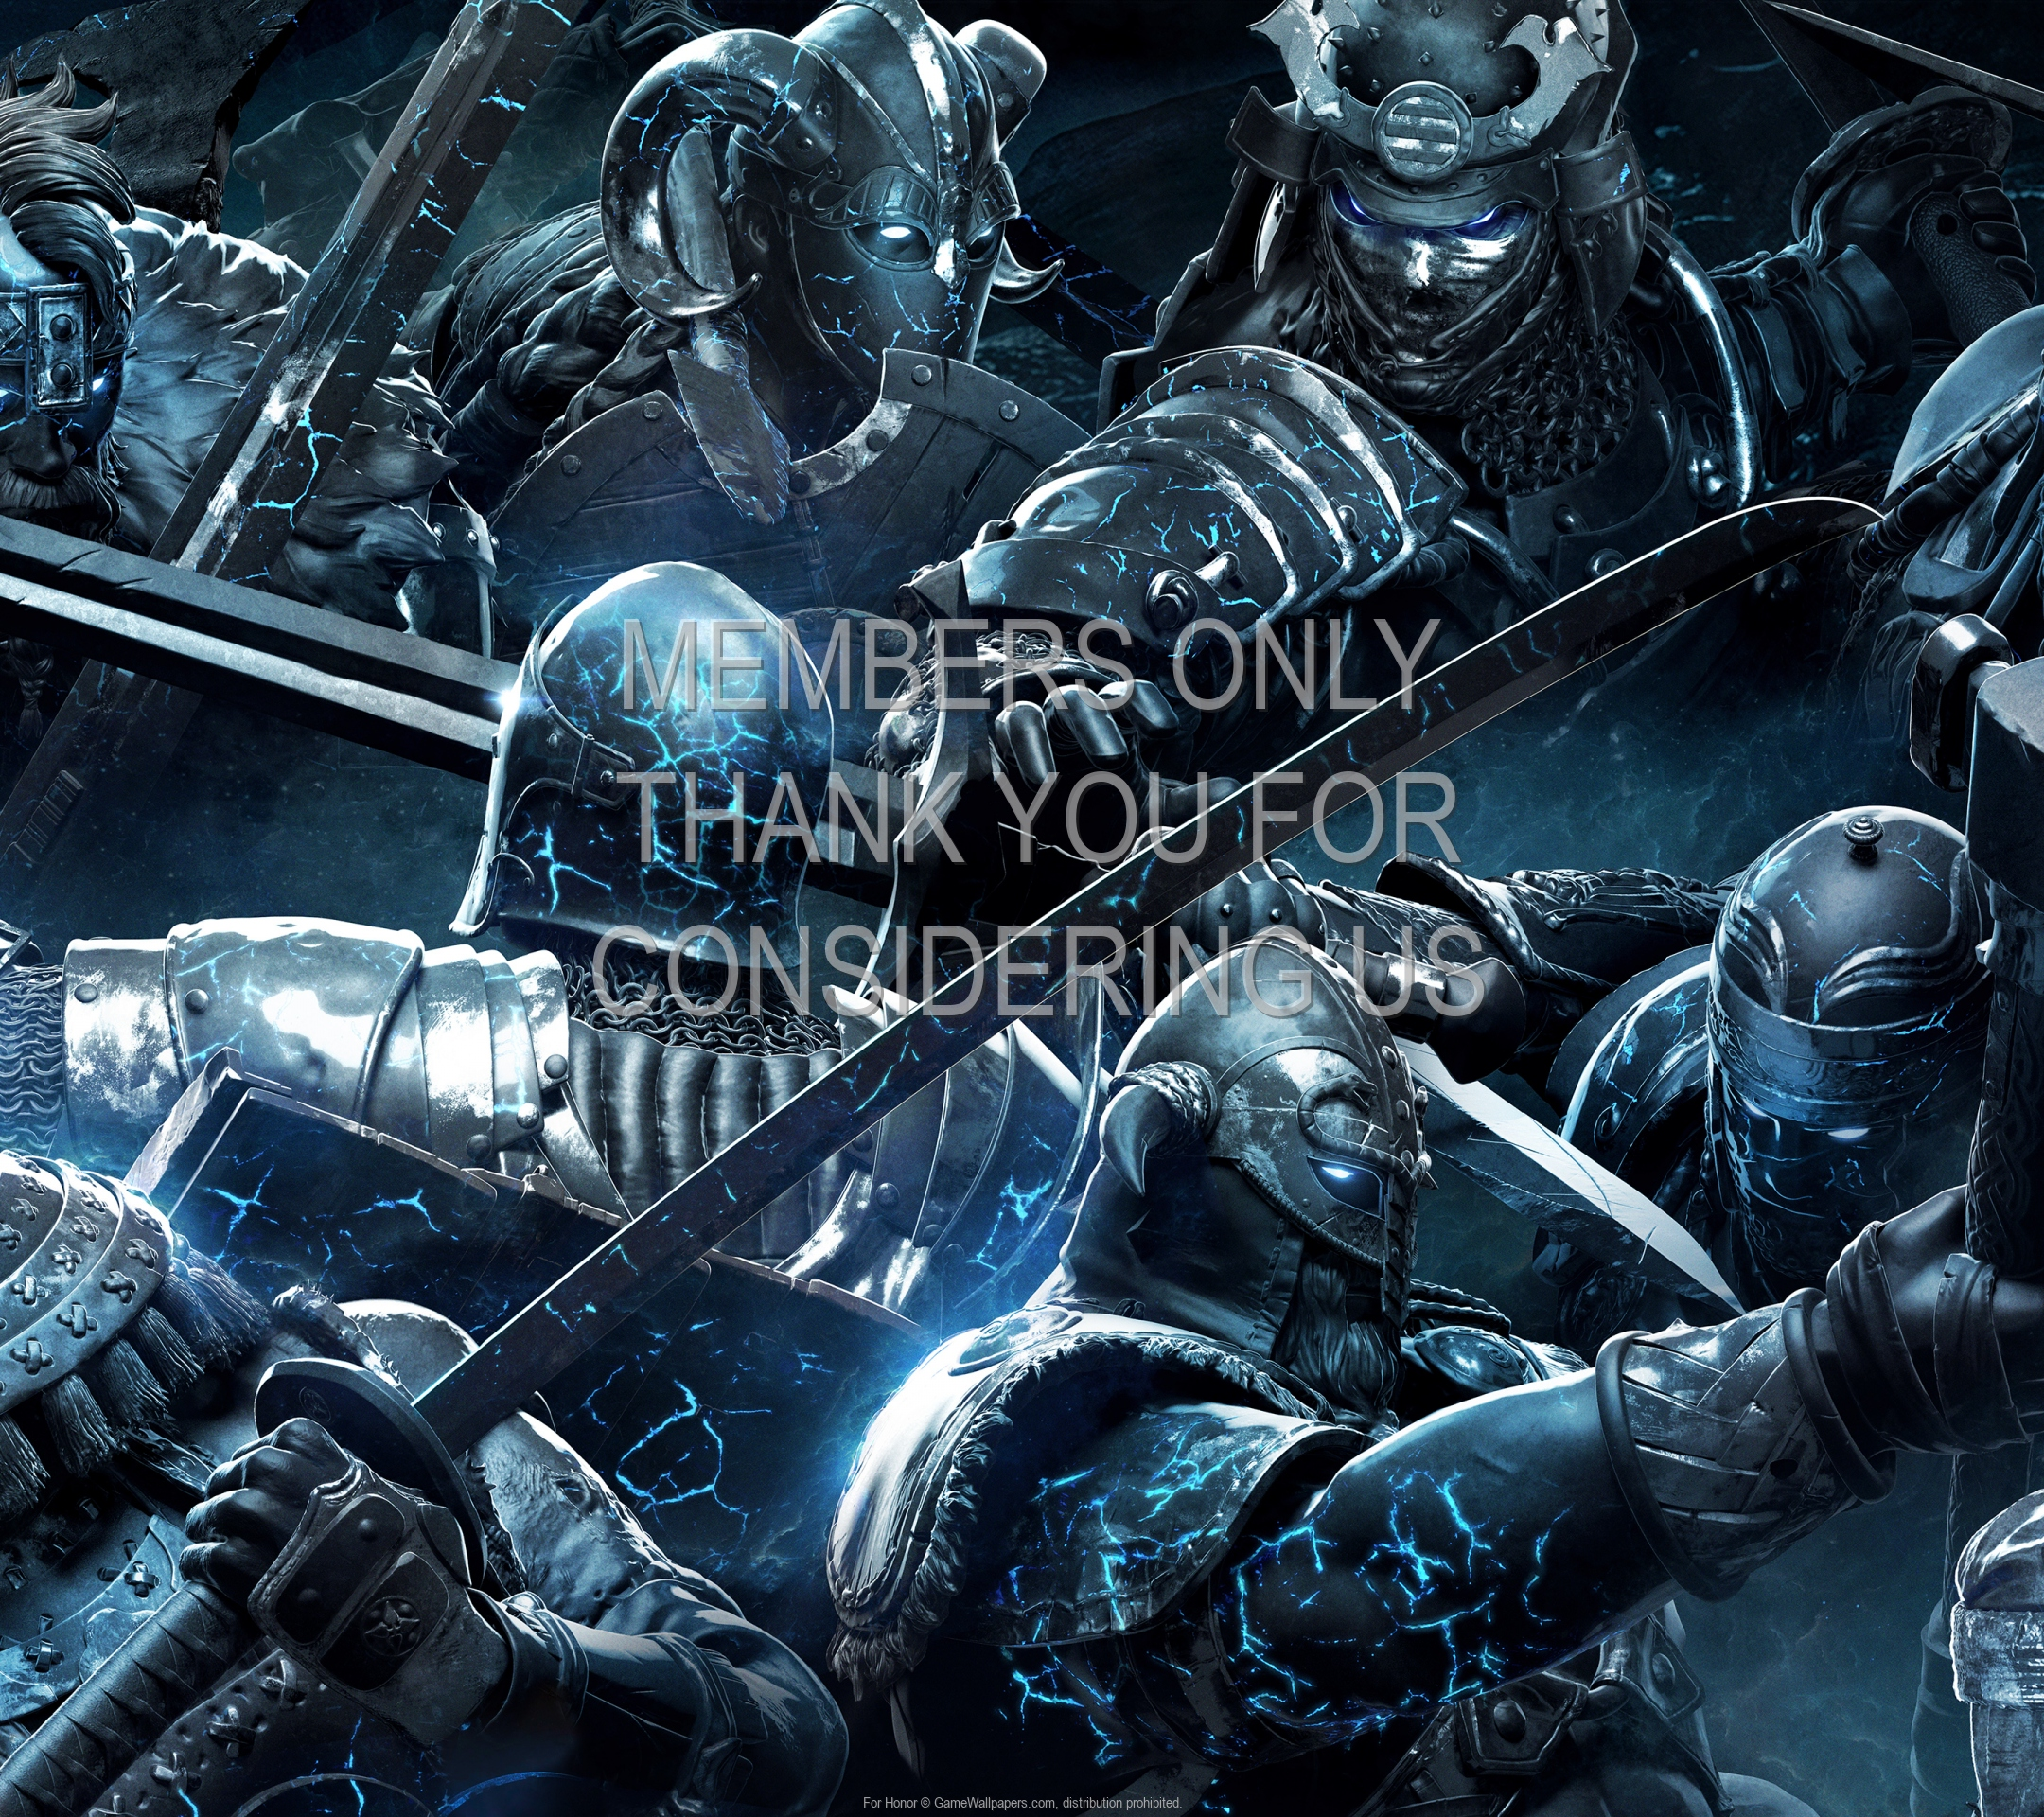 For Honor 1920x1080 Mobile wallpaper or background 16